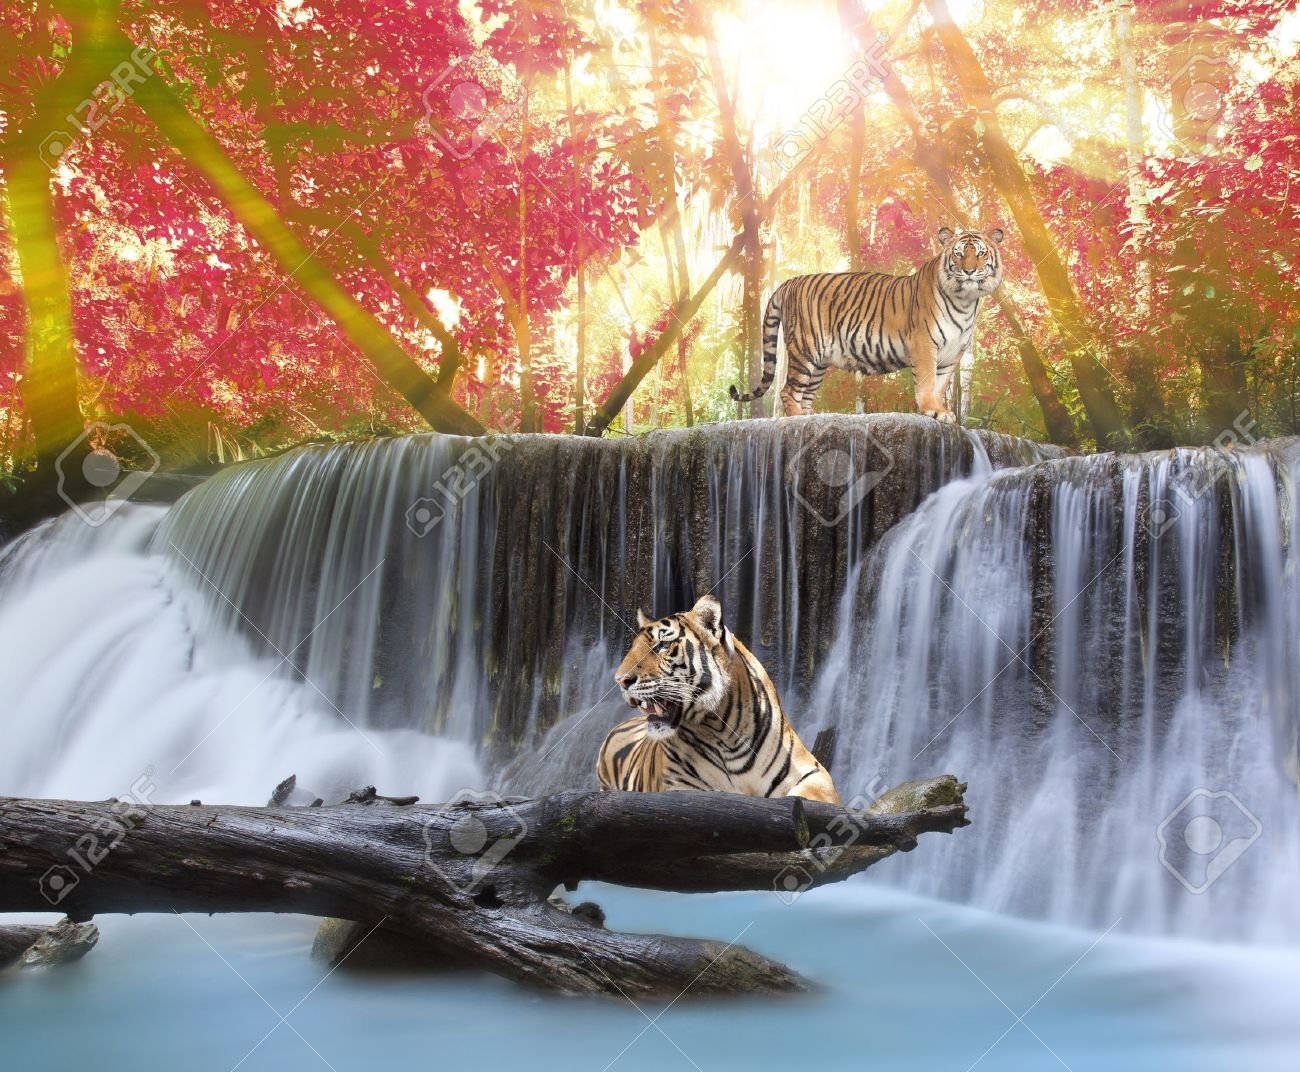 tiger in the jungle stock photo, picture and royalty free image